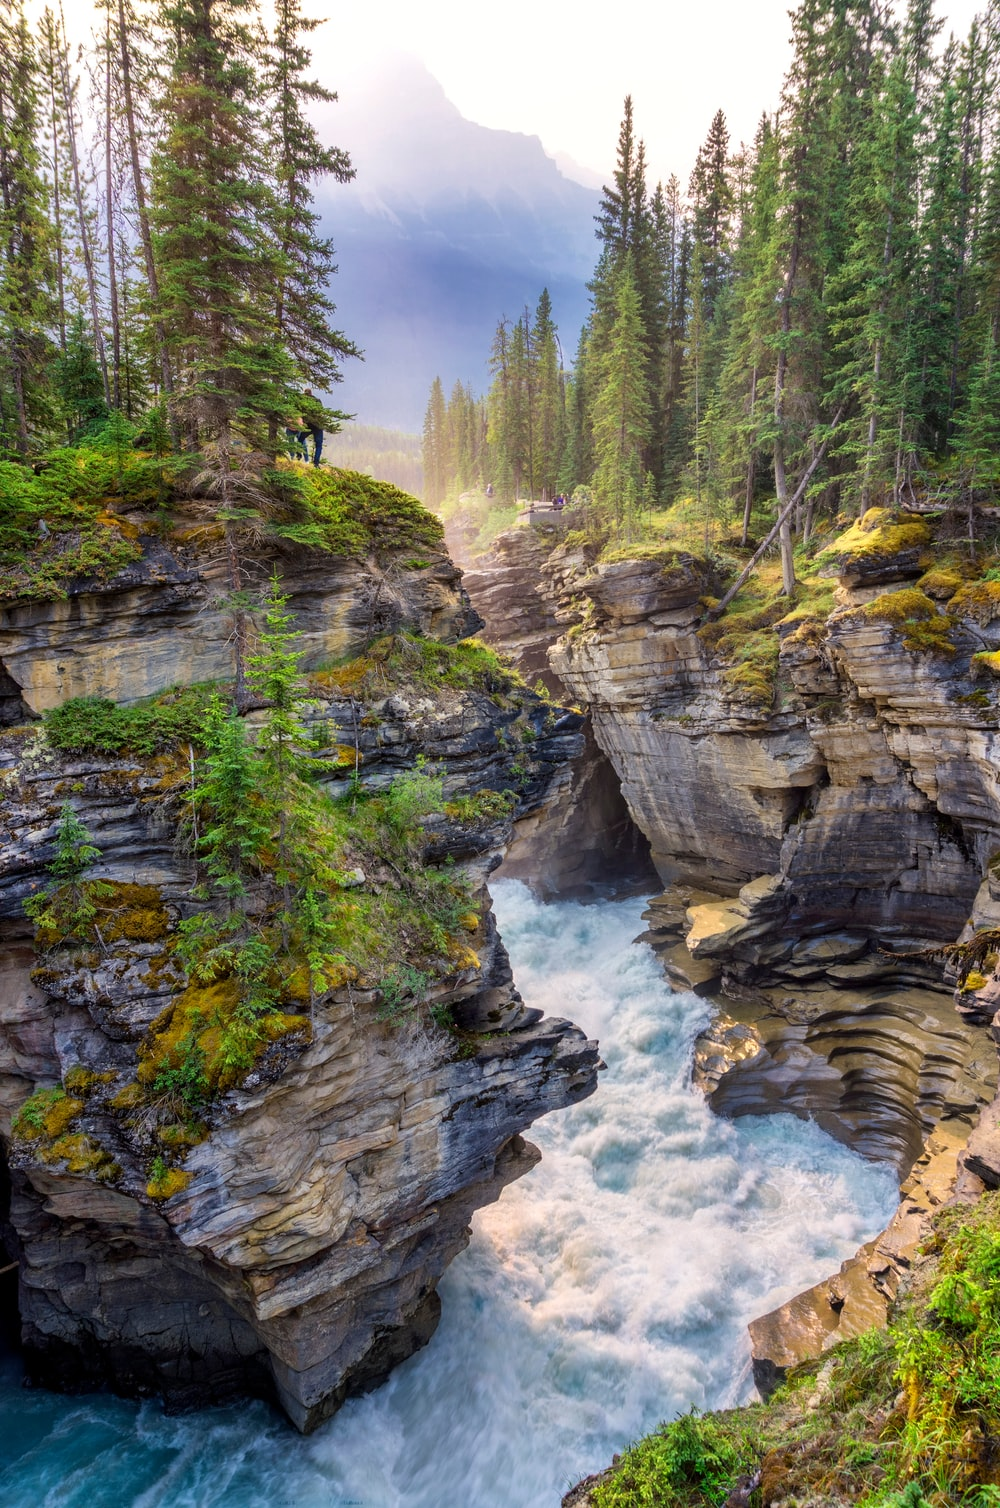 green trees on rocky mountain beside river during daytime